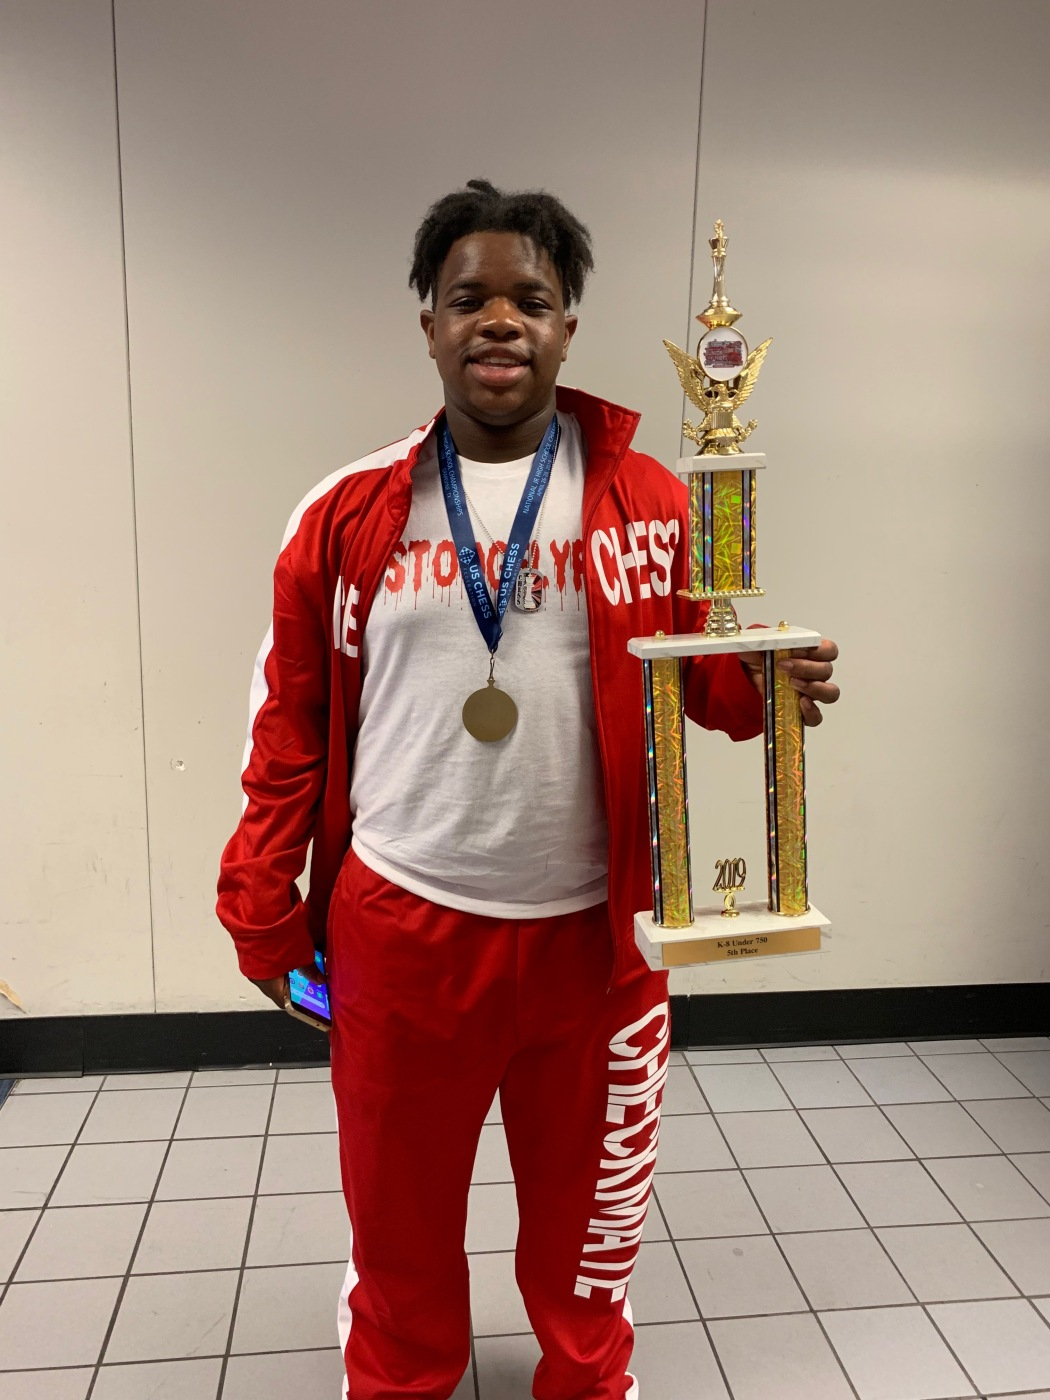 Price Middle School Student Wins Fifth Place in National Chess